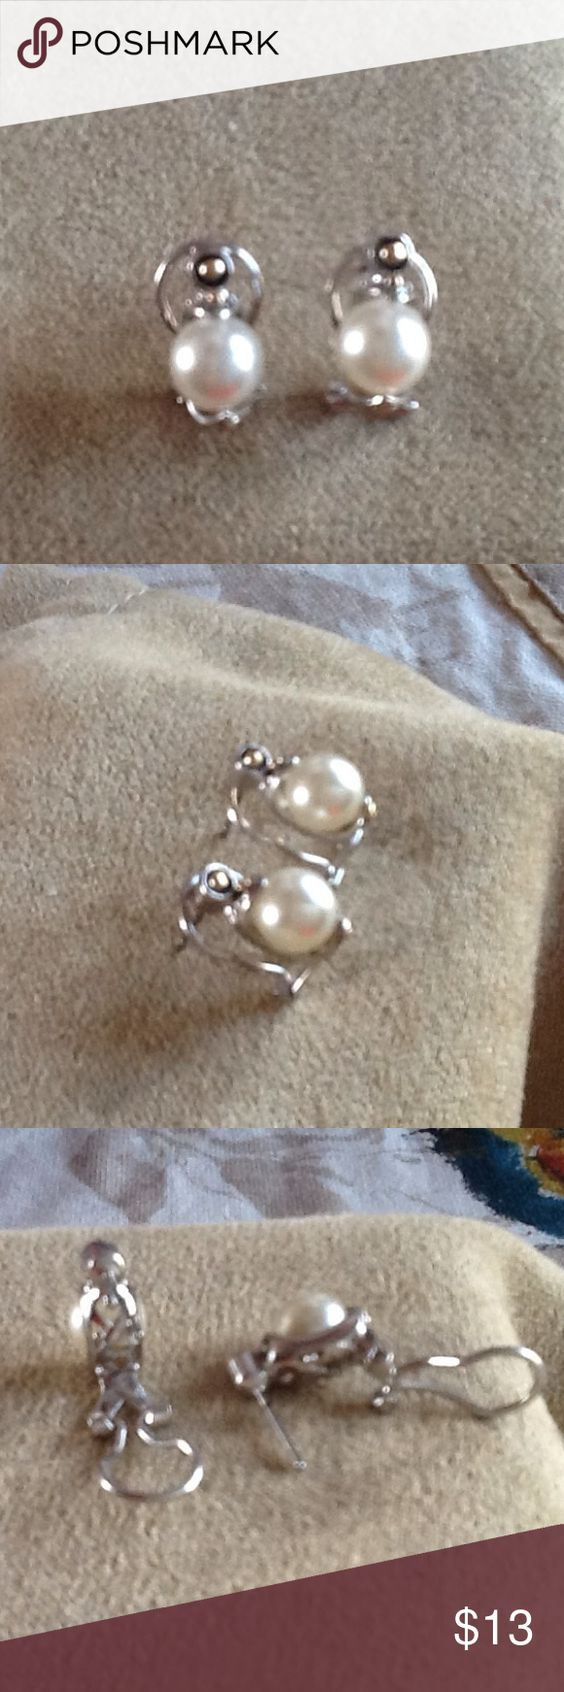 Silver& Pearl Earrings Old Although Never Worn These Are Silver & Pearl Costume  Earrings With